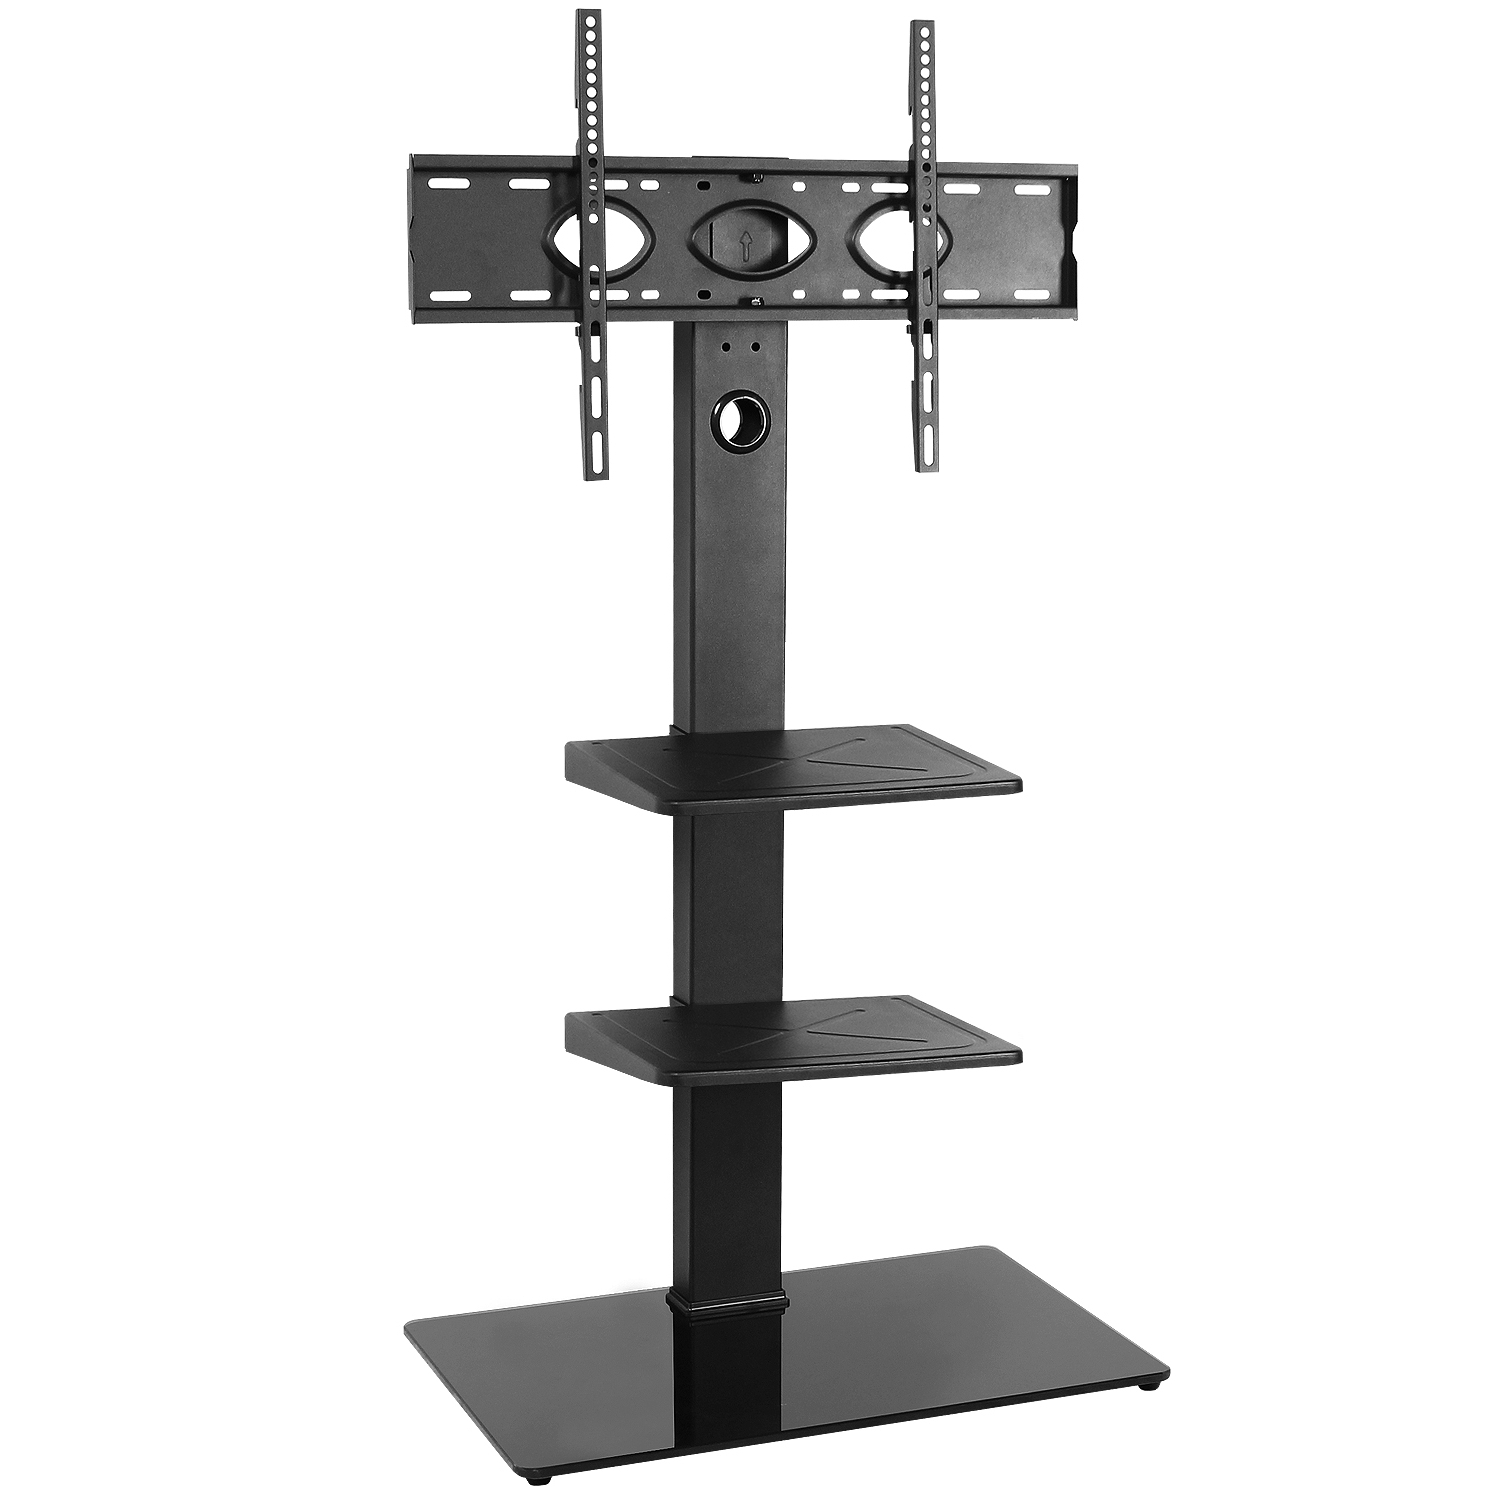 5rcom Floor Corner Tall Tv Stand With Swivel Mount For 32 Intended For Modern Floor Tv Stands With Swivel Metal Mount (View 8 of 20)